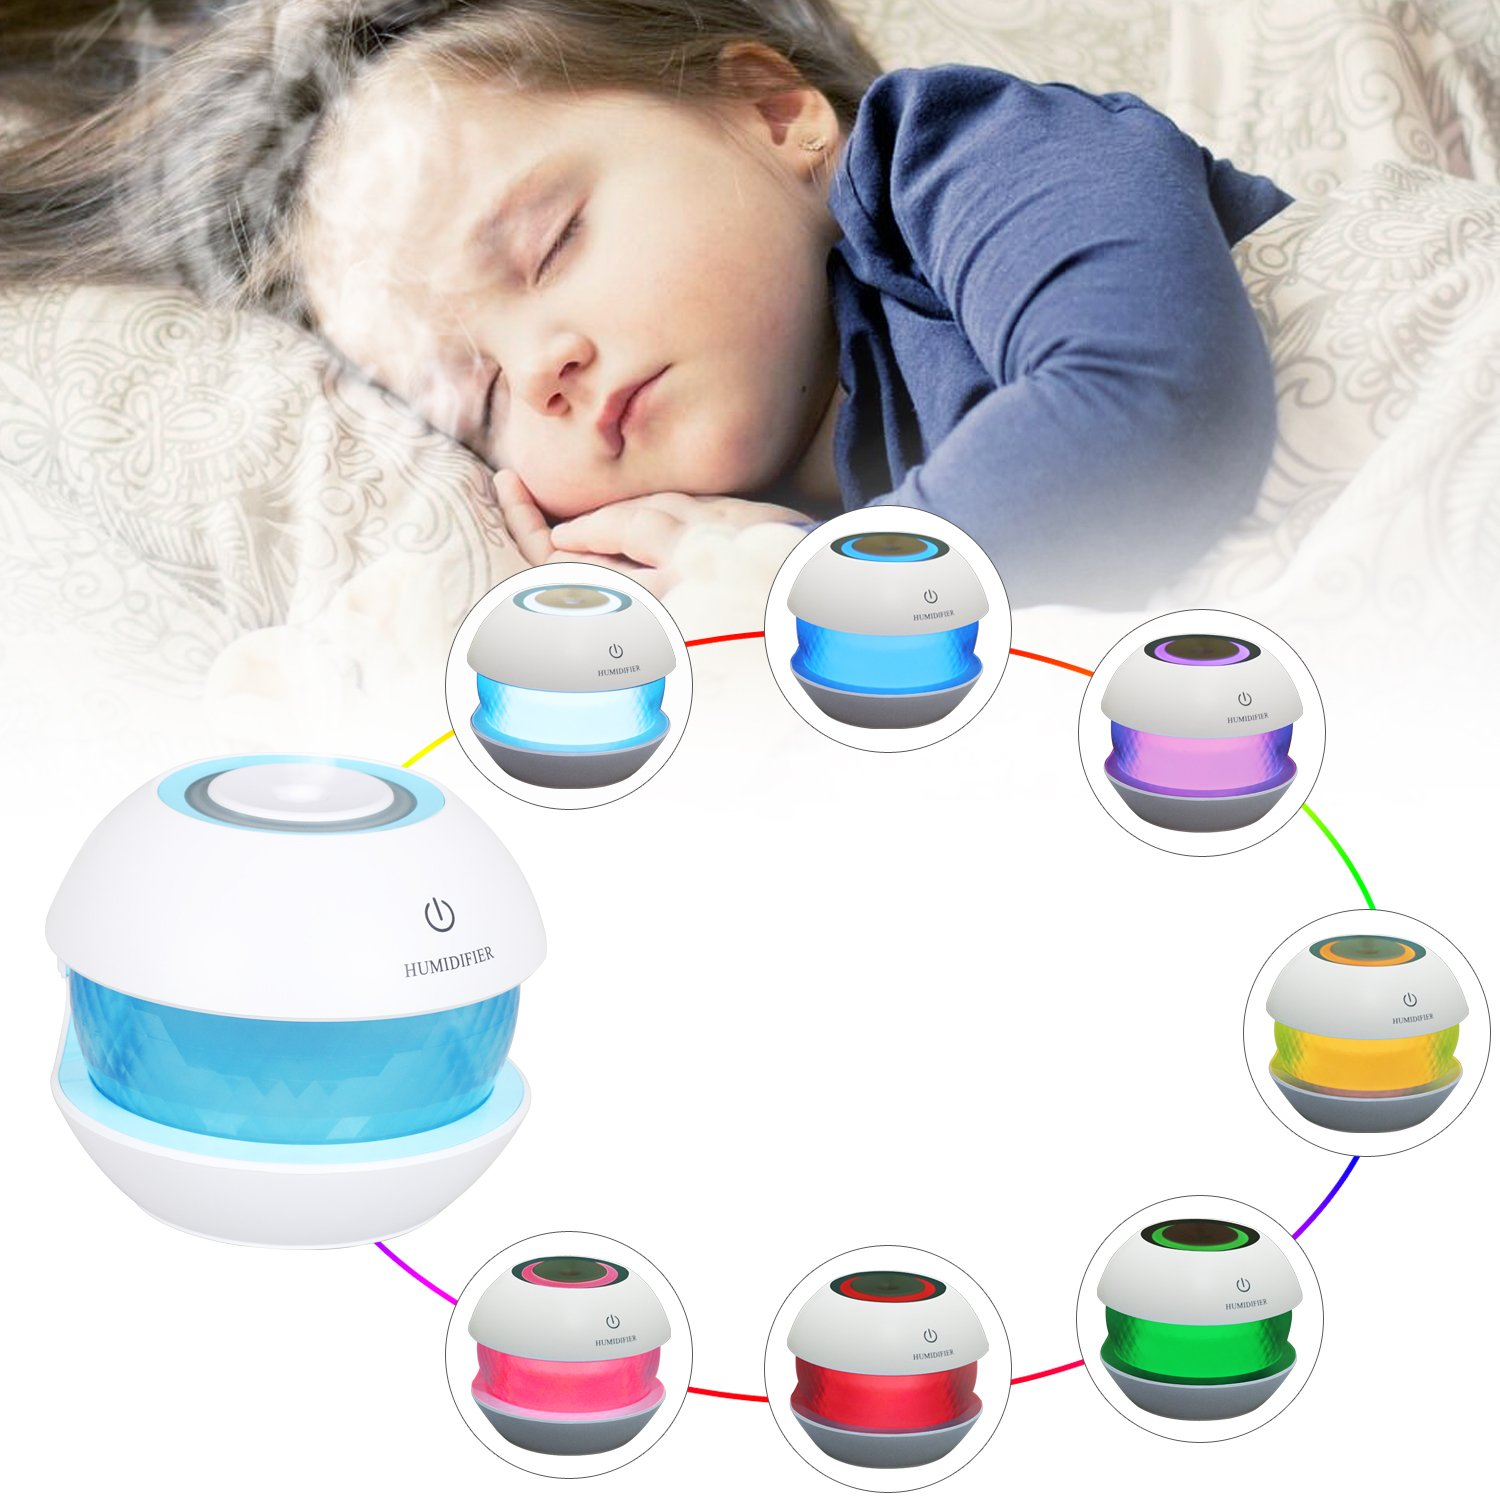 150ML USB Humidifiers Ultrasonic Cool Mist Air Humidifier Diffuser Essential Oil Diffusers Aroma Room Night Lighting 7 LED Color Changing Lamps Waterless Auto Shut-Off For Car Office Spa Yoga Room